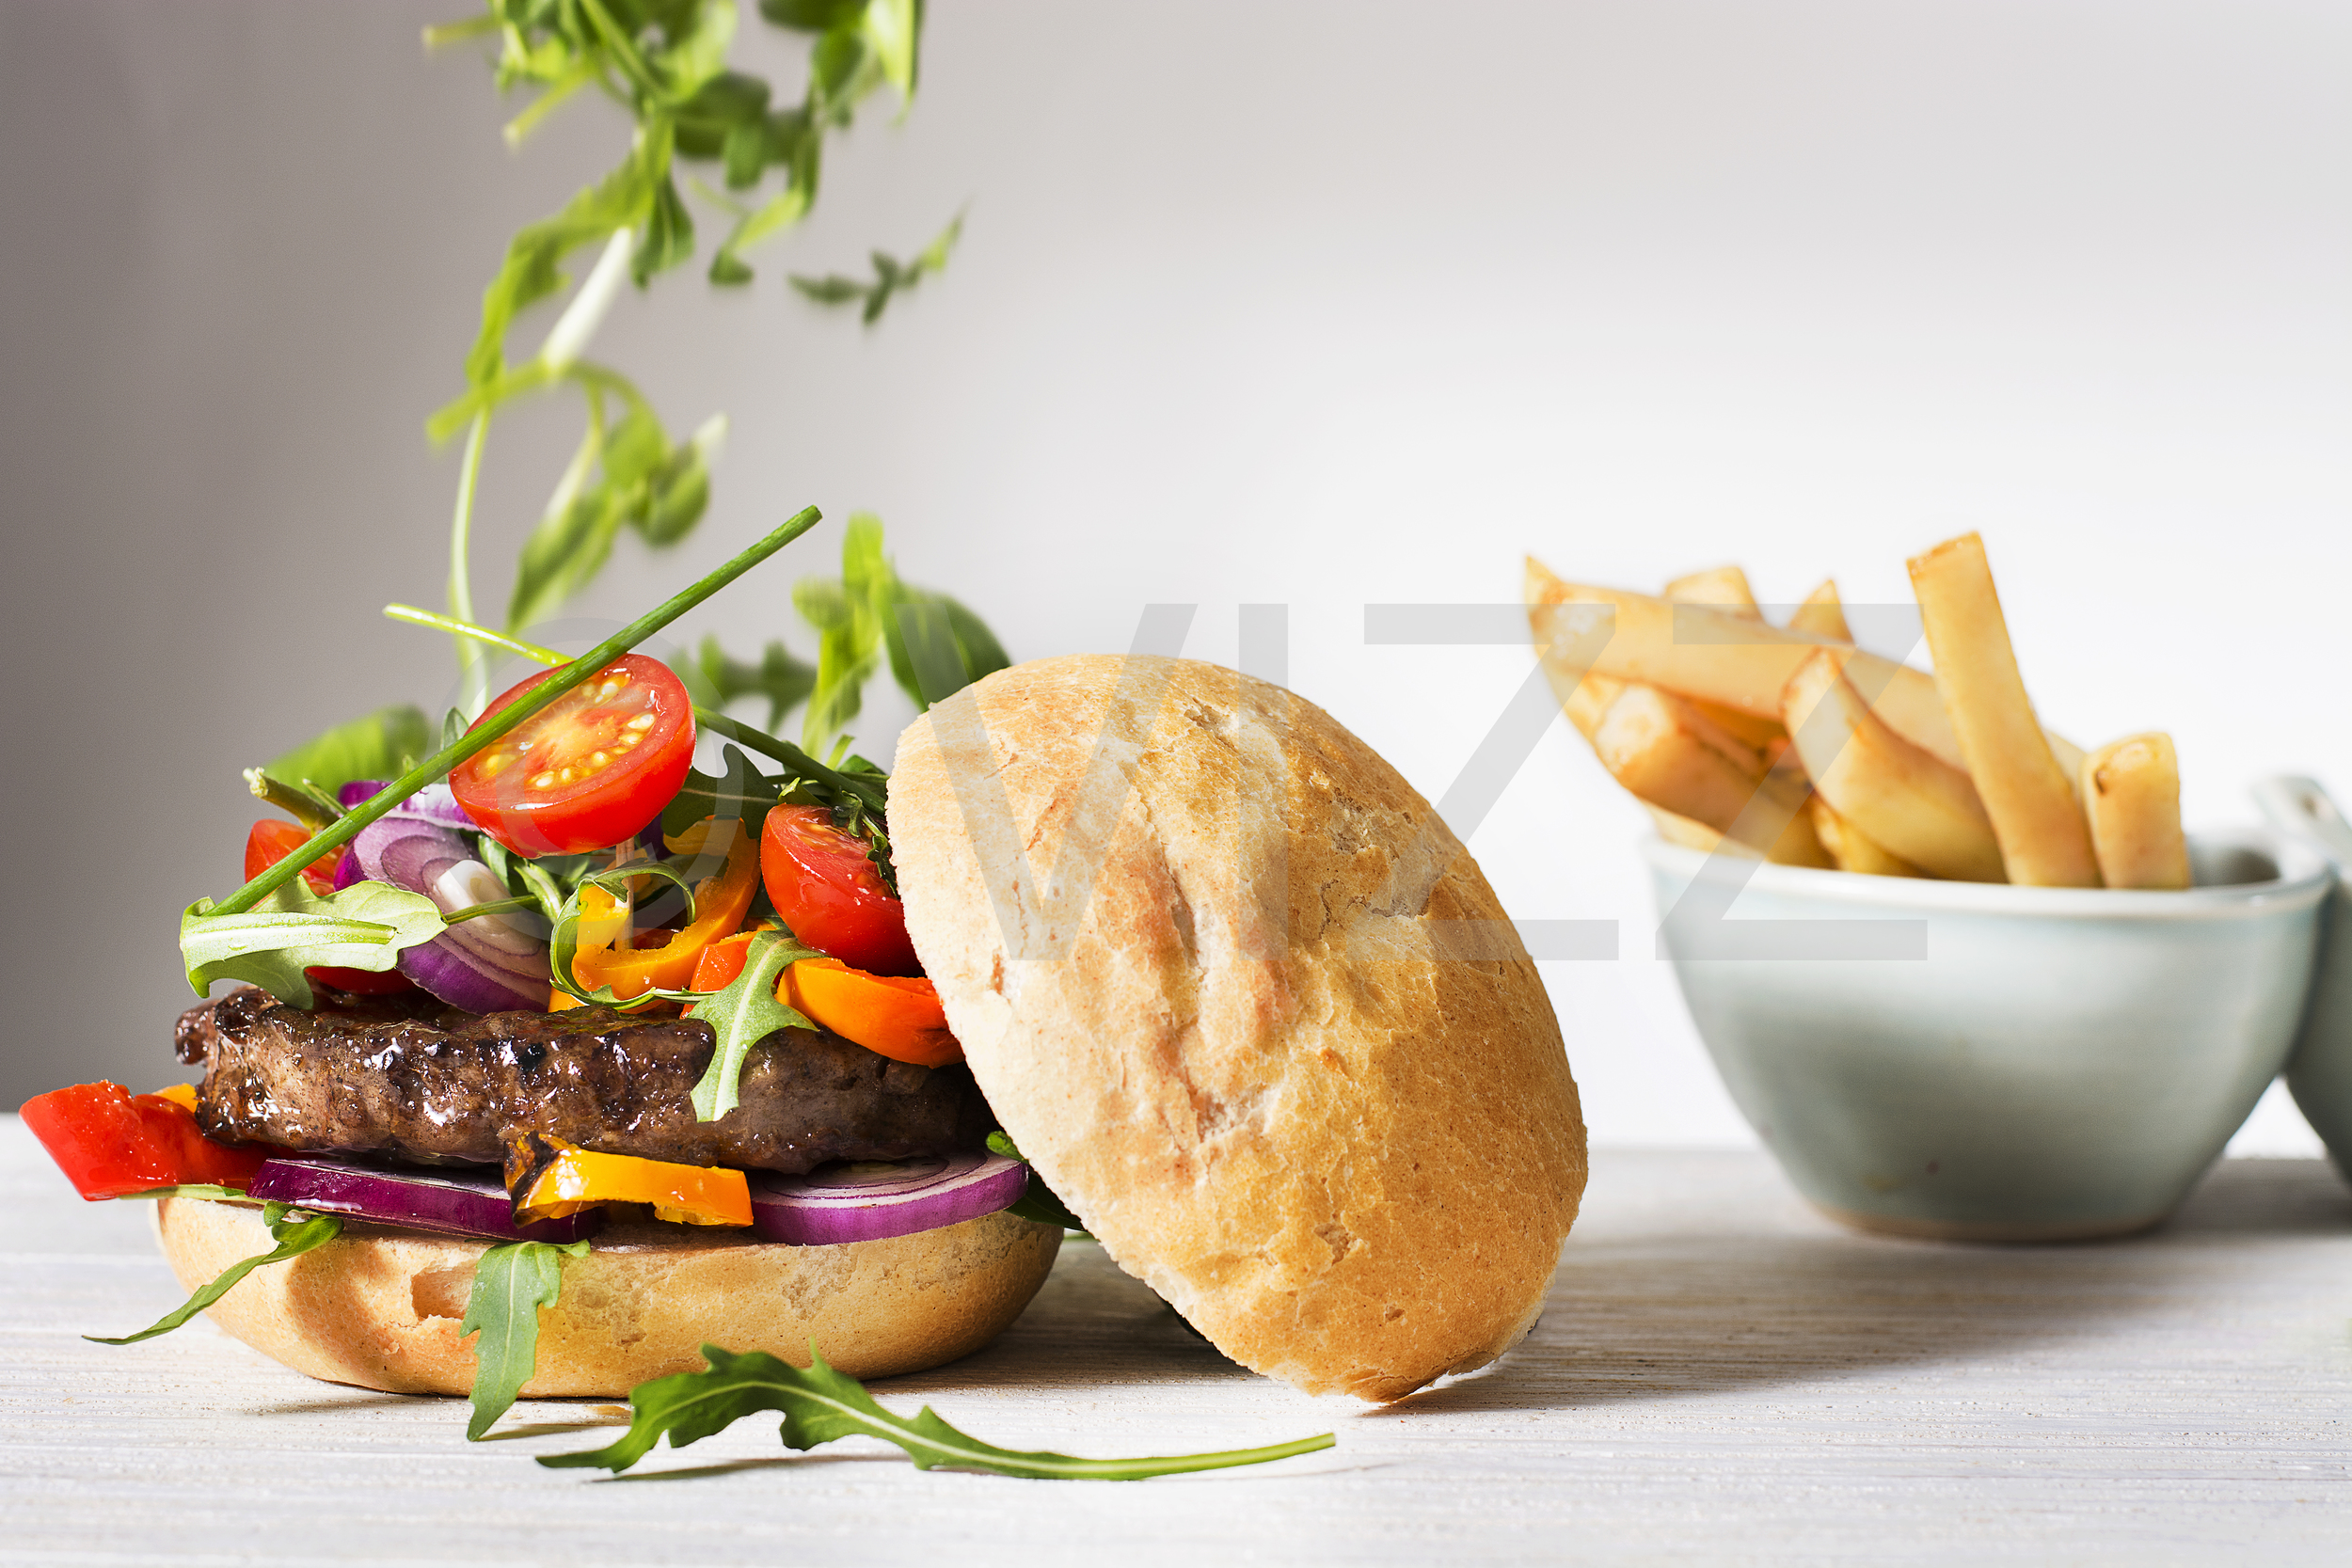 Food photography - Burger & chips